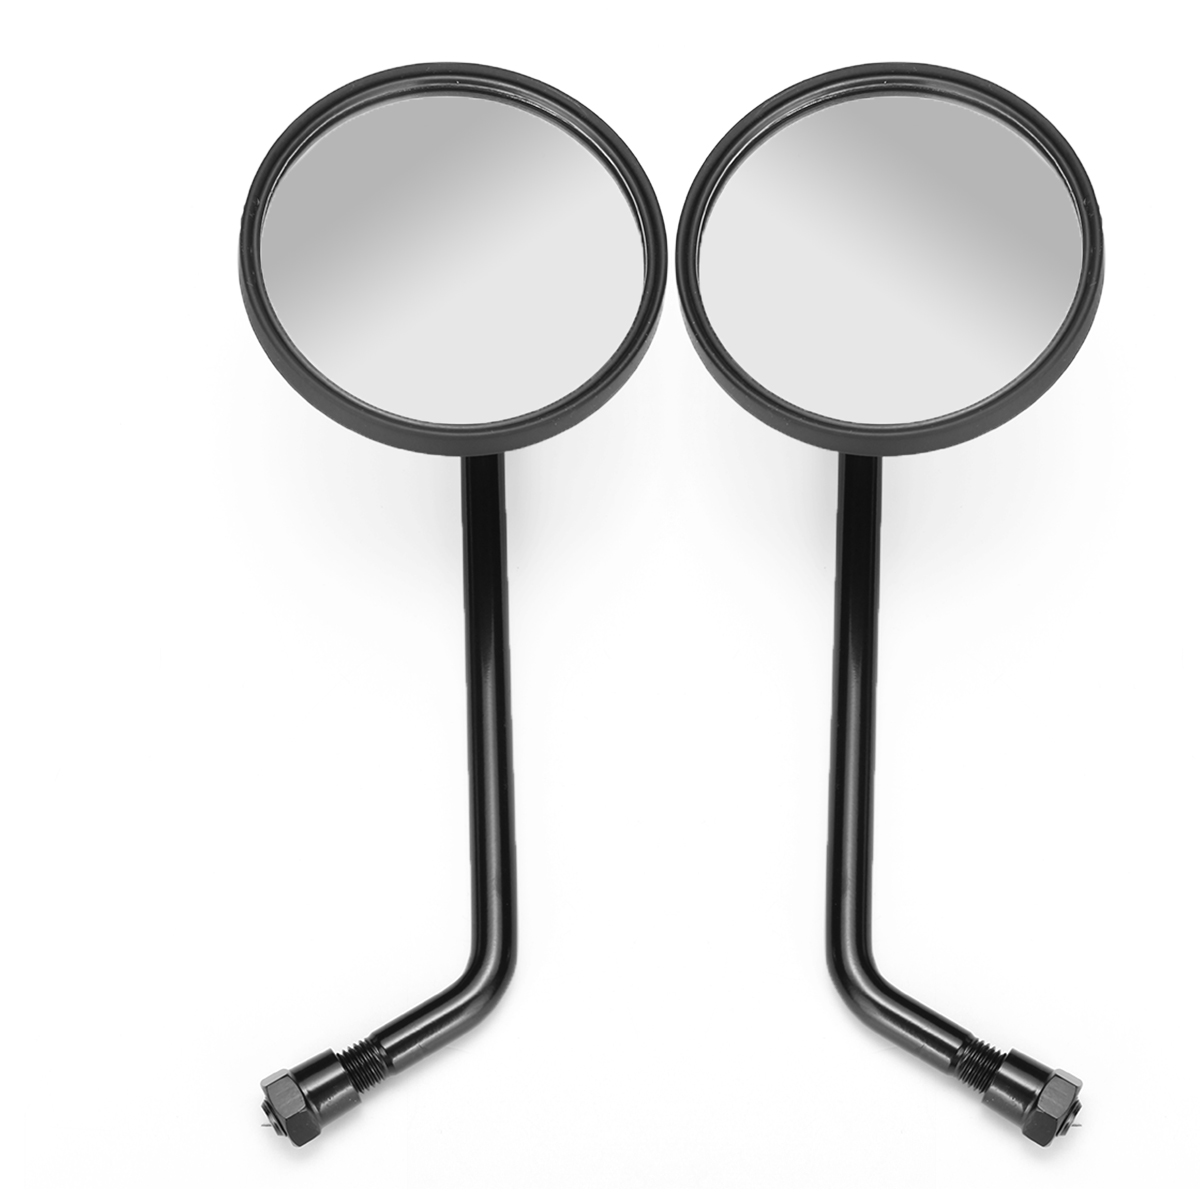 mirrors harley davidson round retro sportster mirror motorcycle ryca motors classic matte rearview autoleader 1pair abs motorcycles alexnld side automobiles